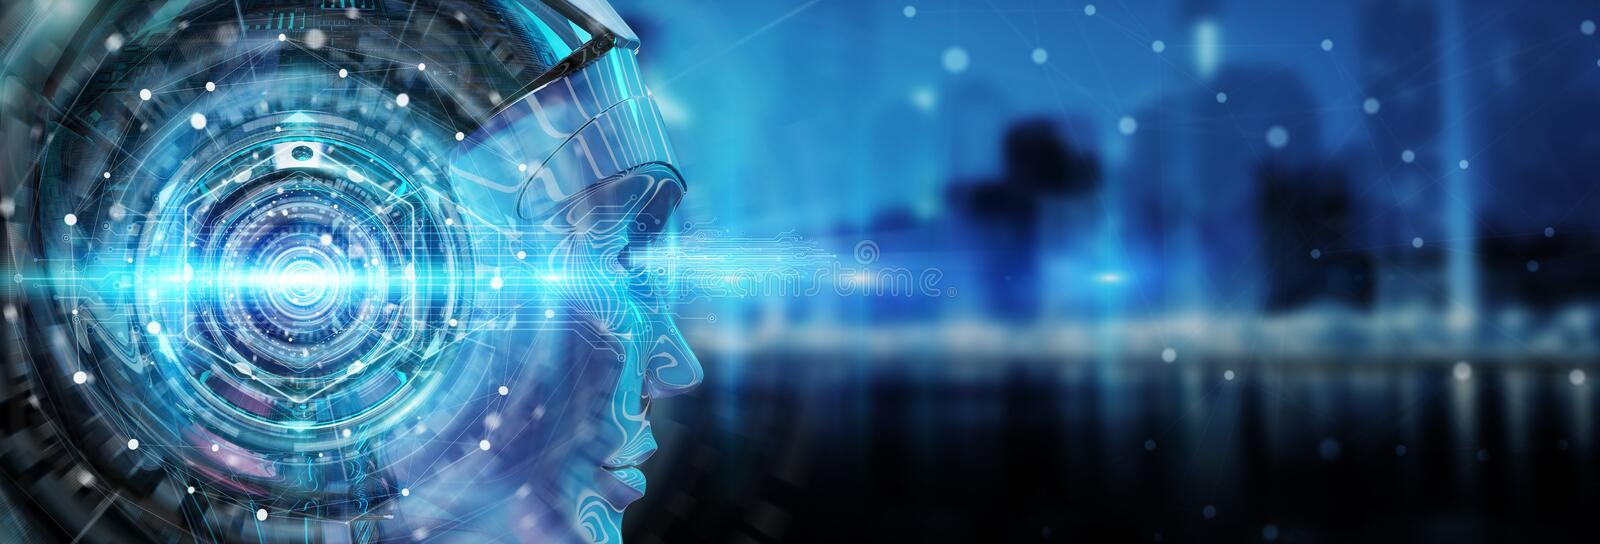 Cyborg head using artificial intelligence to create digital interface 3D rendering. Cyborg head using artificial intelligence to create digital interface on city vector illustration